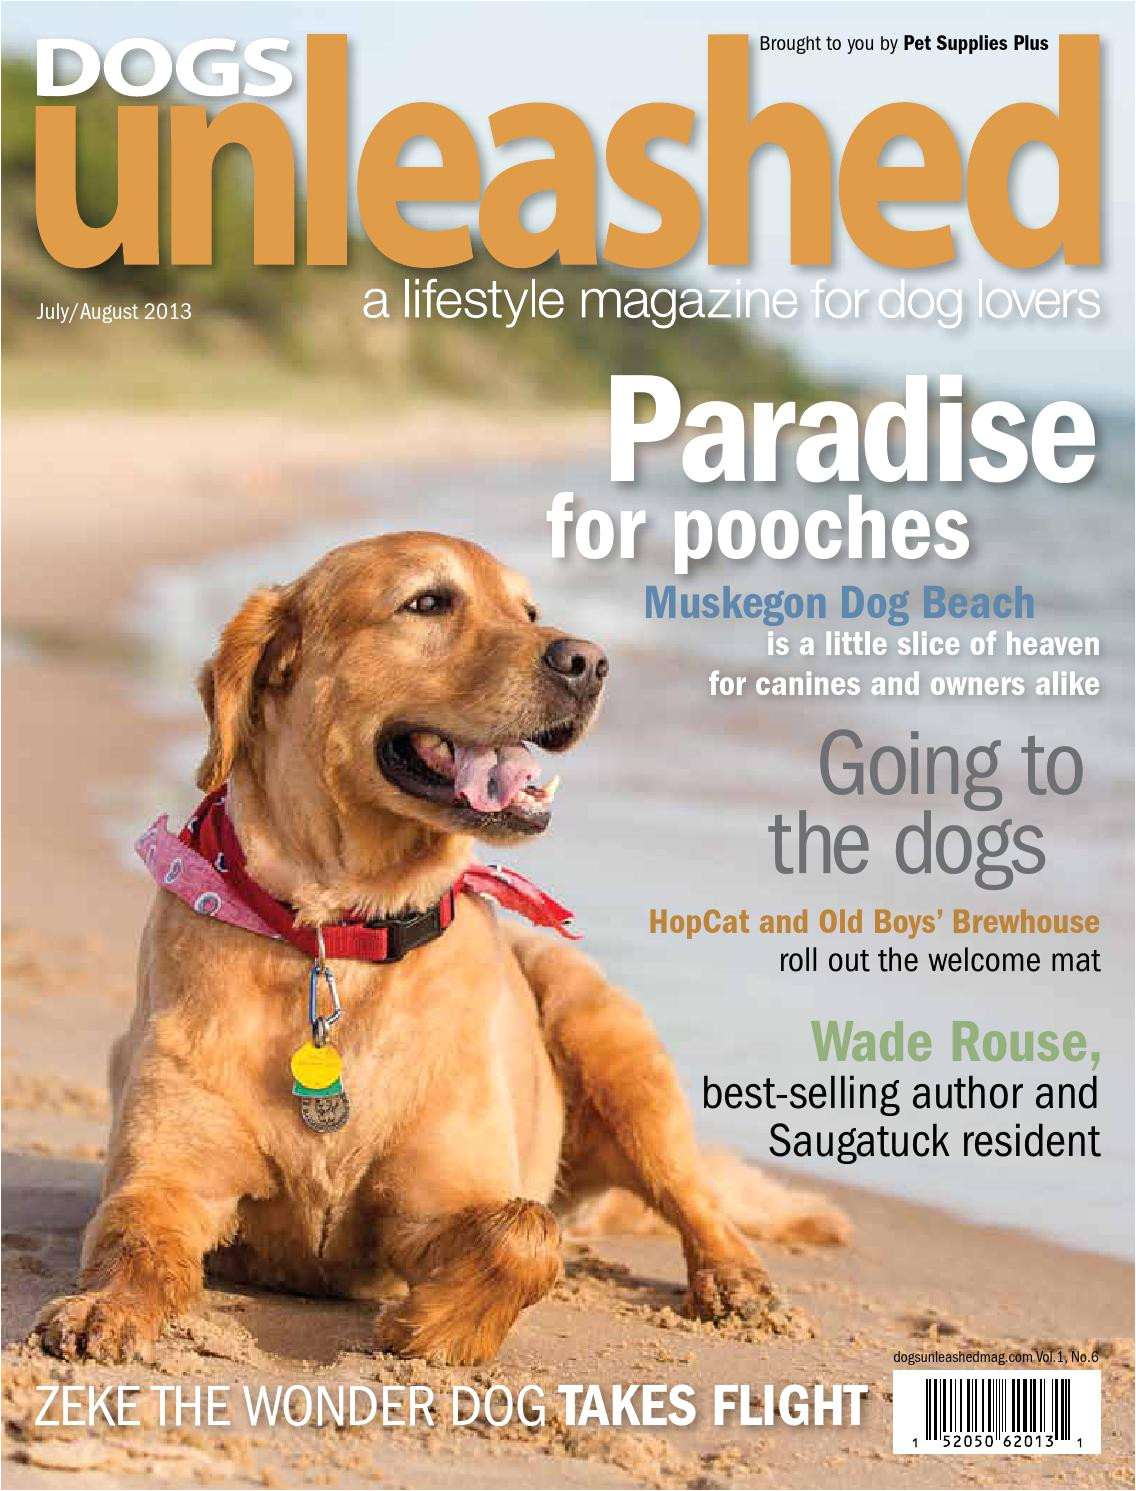 How to Euthanize A Dog with Benadryl Dogs Unleashed July August 2013 by Press Unleashed issuu